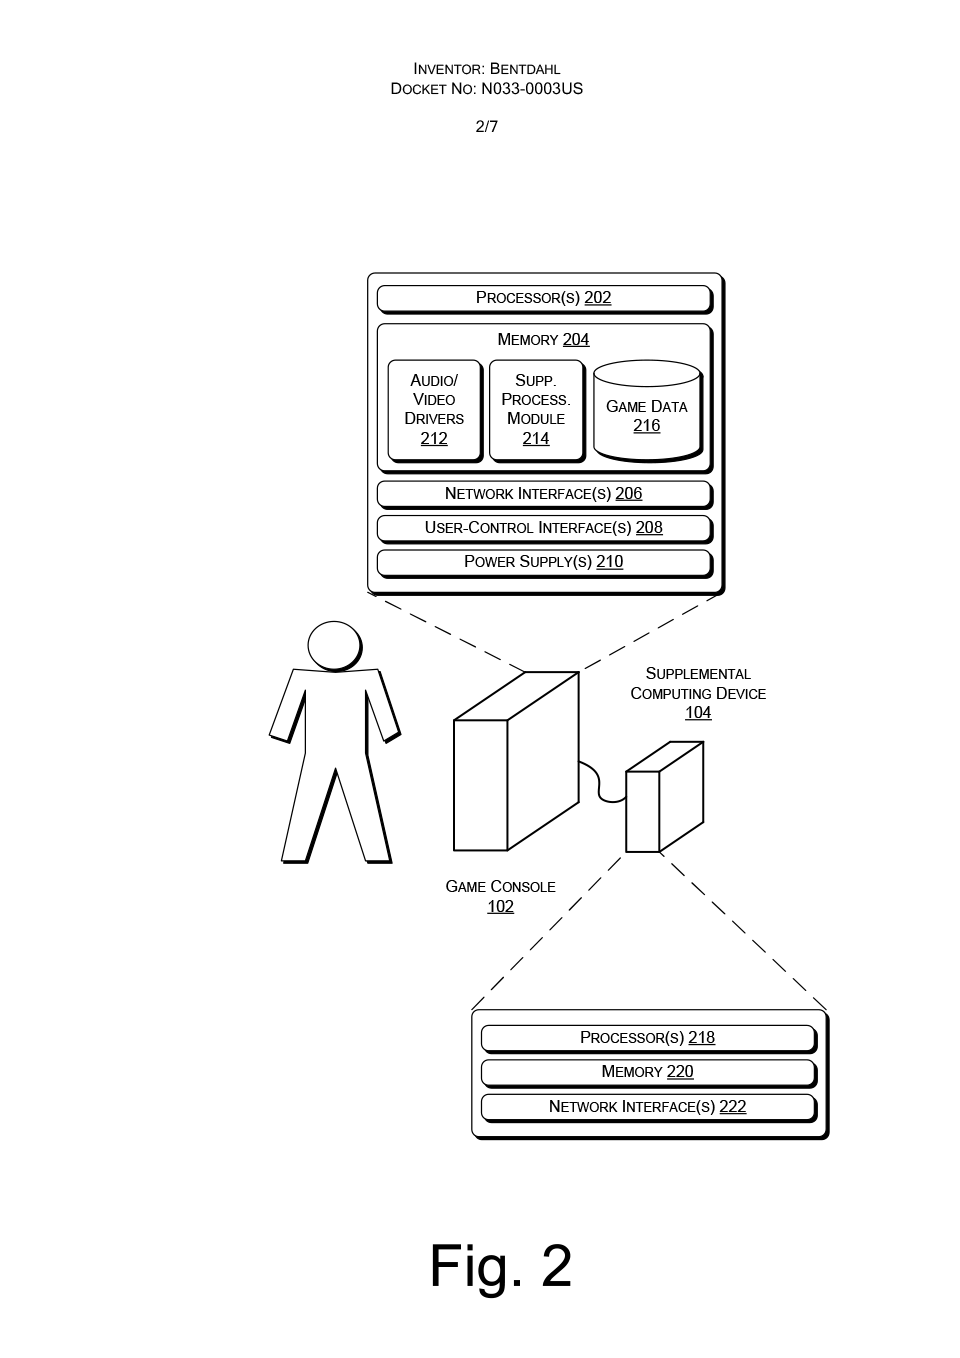 Nintendo files patent application for cloud gaming devices